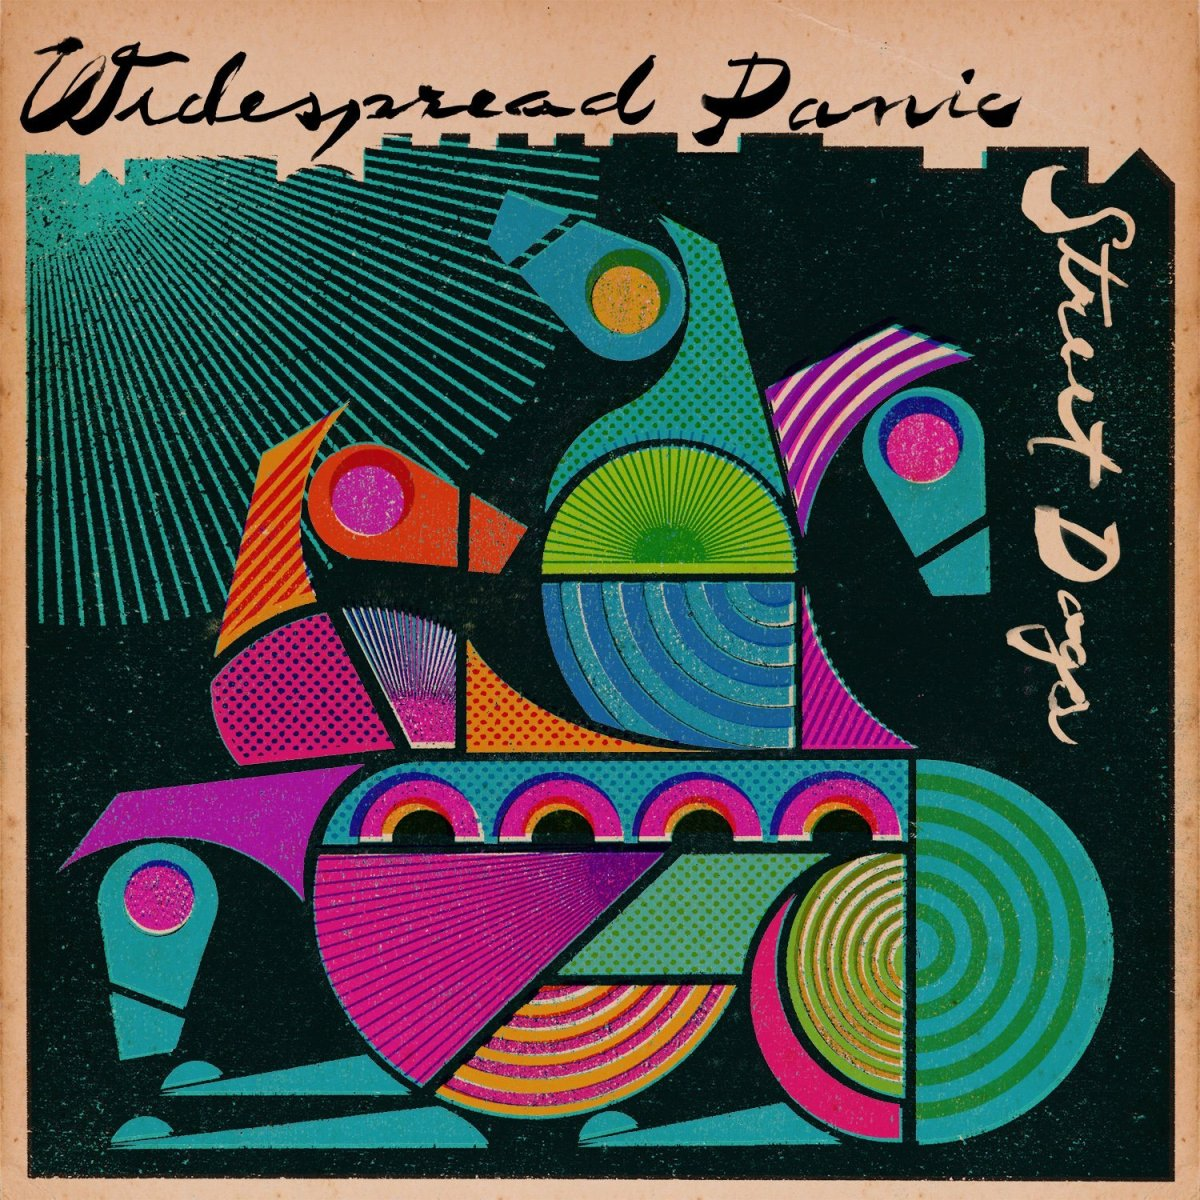 Widespread Panic Releases First Studio Album In Five Years